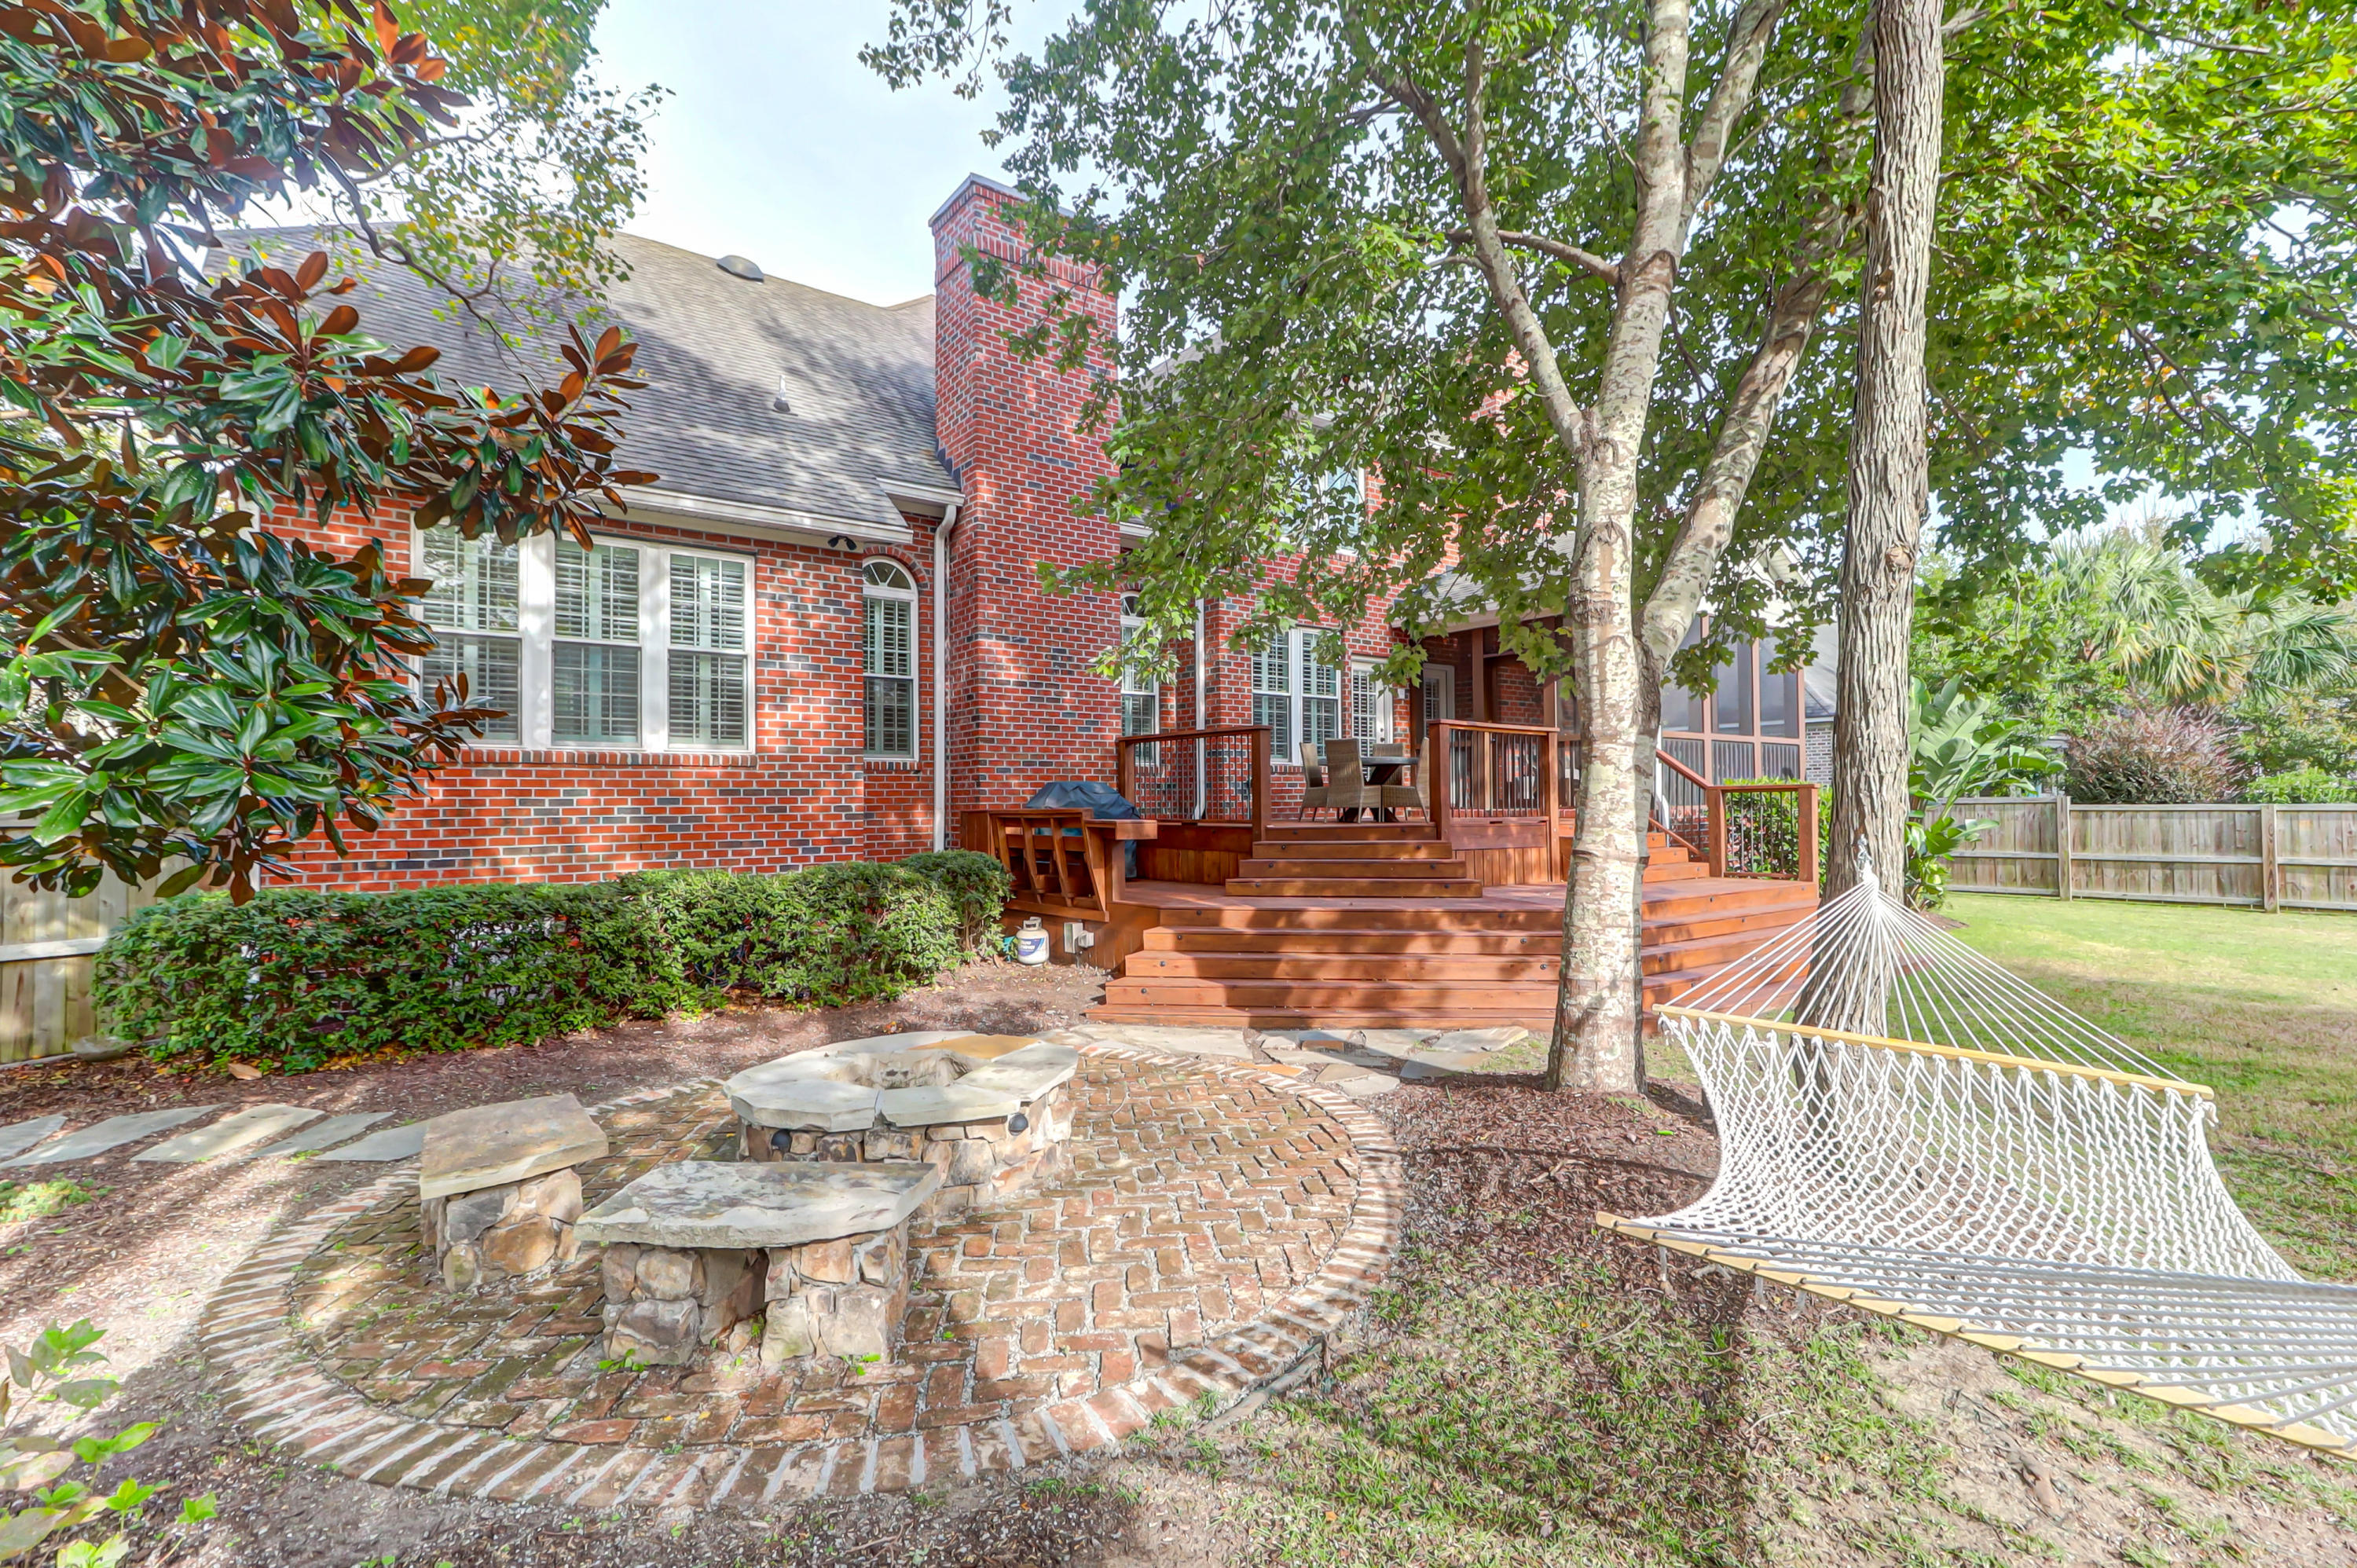 Woodward Pointe Homes For Sale - 657 White Chapel, Charleston, SC - 9